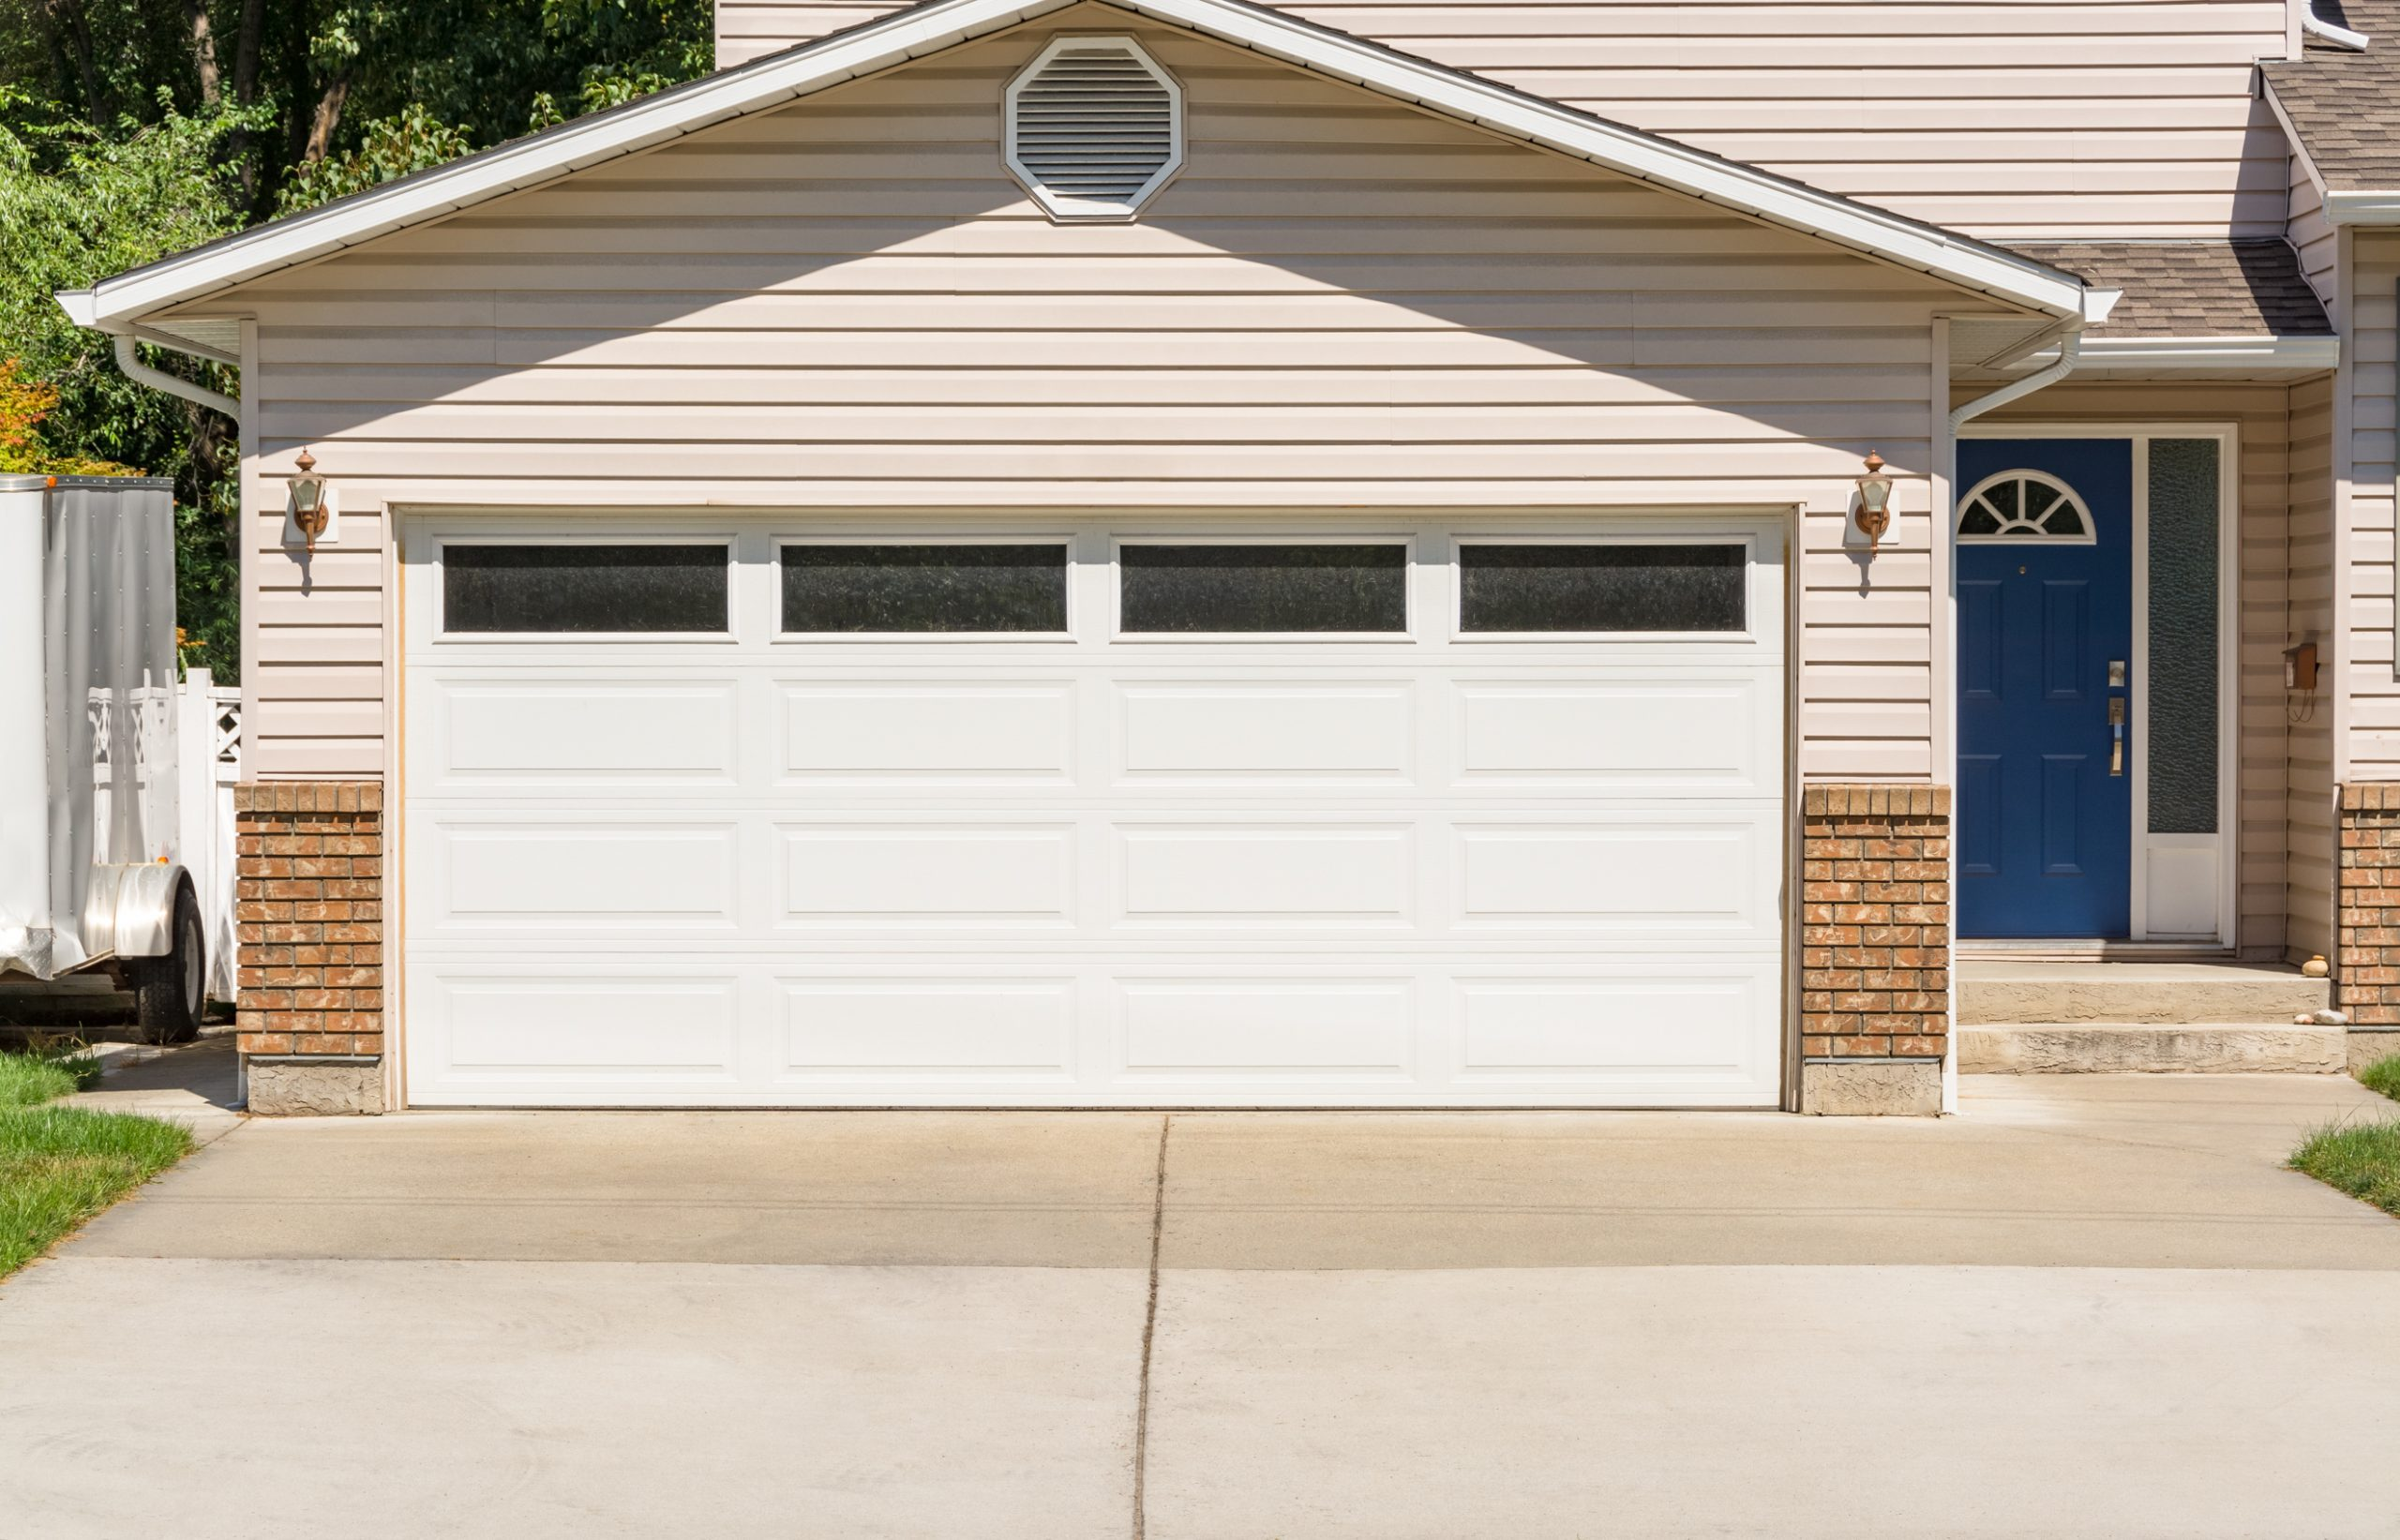 Wide-Garage-Door-Of-Residential-House-with-Concrete-Driveway-in-Front-